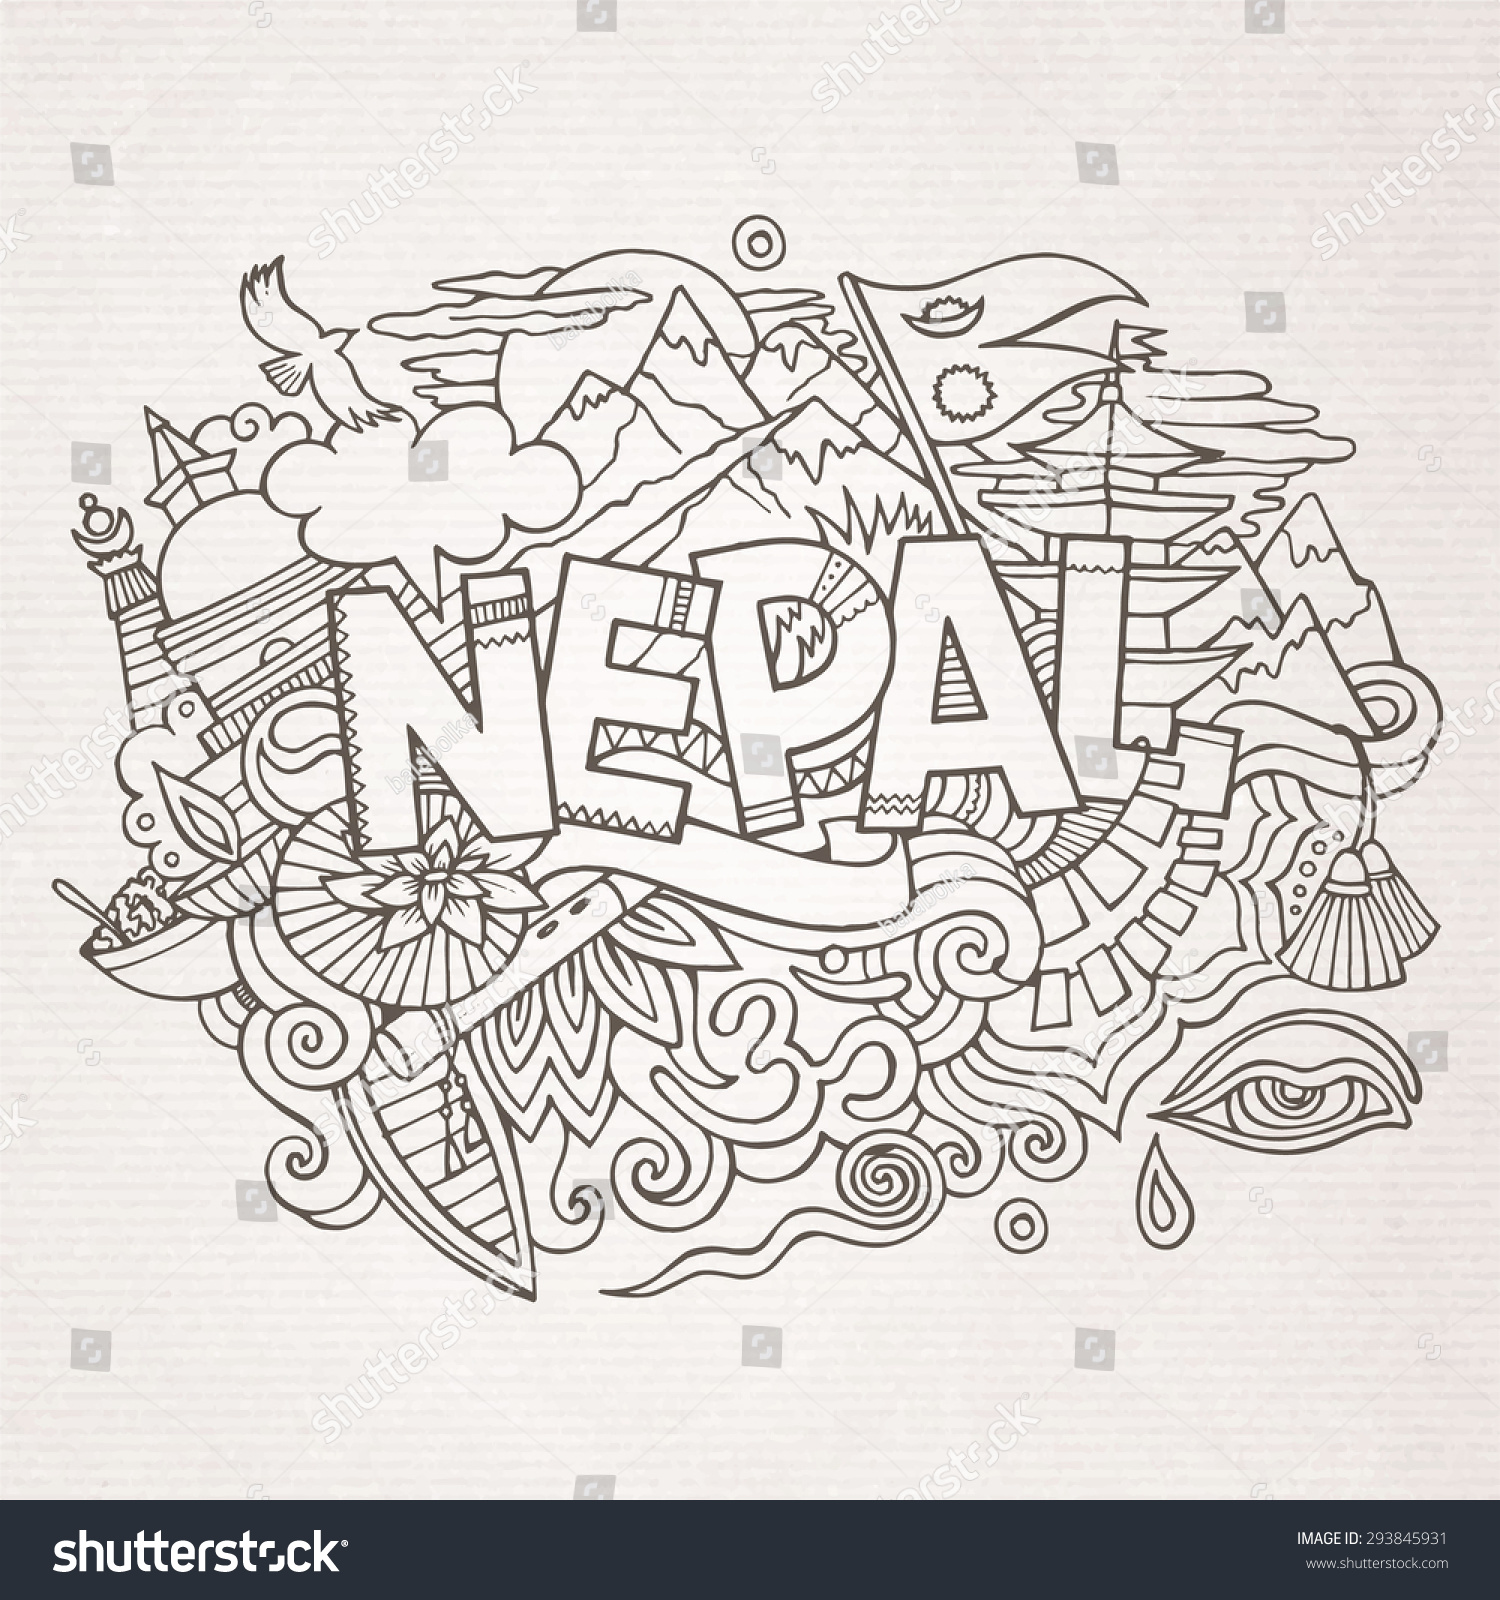 Stock vector music hand lettering and doodles elements - Nepal Country Hand Lettering And Doodles Elements And Symbols Background Vector Hand Drawn Sketchy Illustration